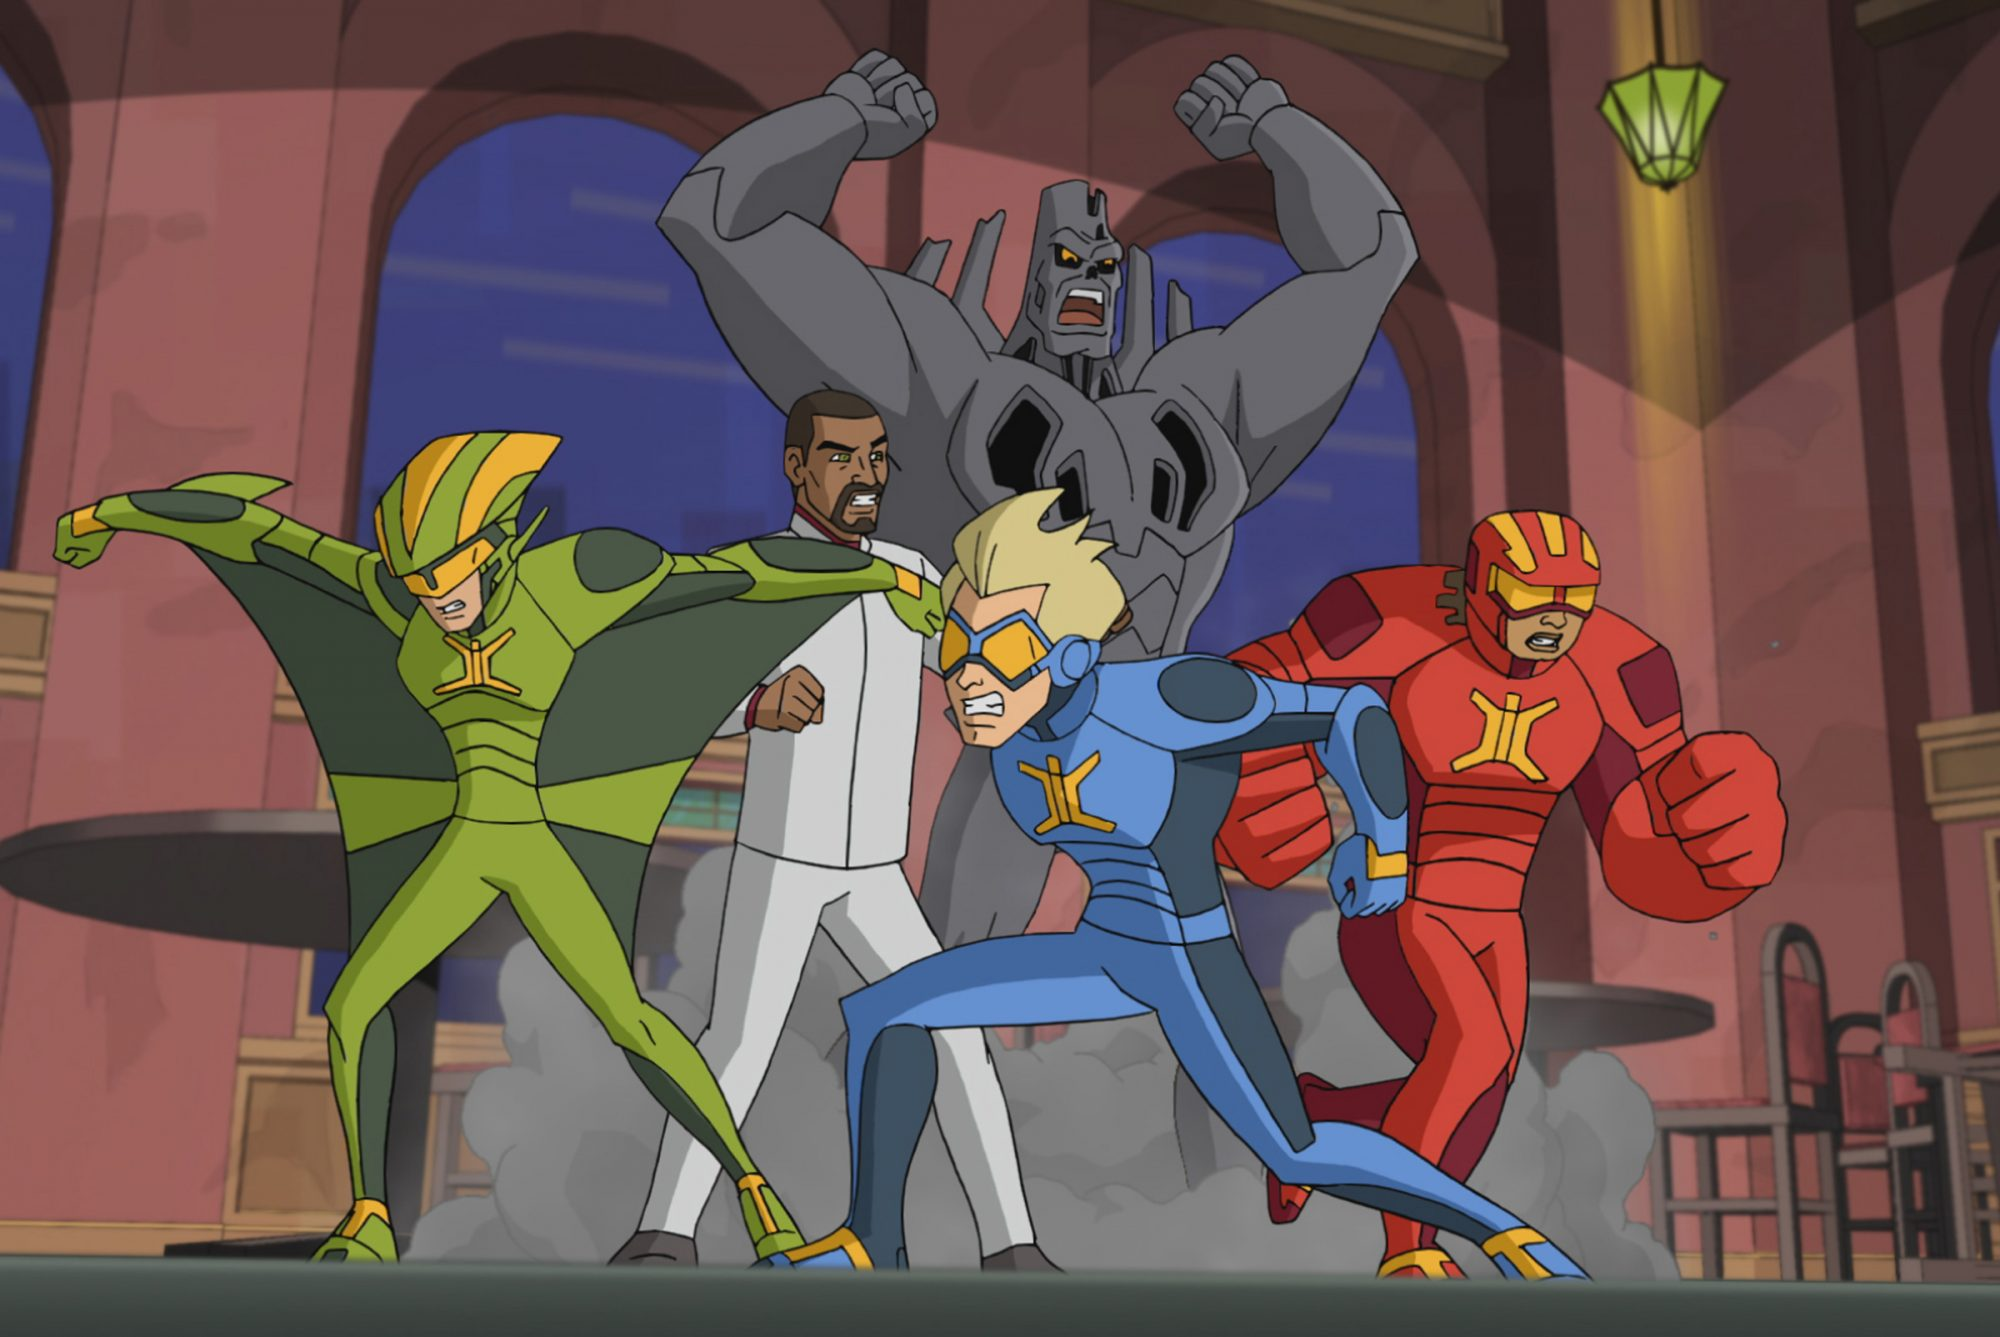 STRETCH ARMSTRONG AND THE FLEX FIGHTERS, front, from left: Wingspan (voiced by Steven Yeun), Stretch Armstrong (voiced by Scott Menville), Omni-Mass (voiced by Ogie Banks),(Season 1, airs Nov. 17, 2017)